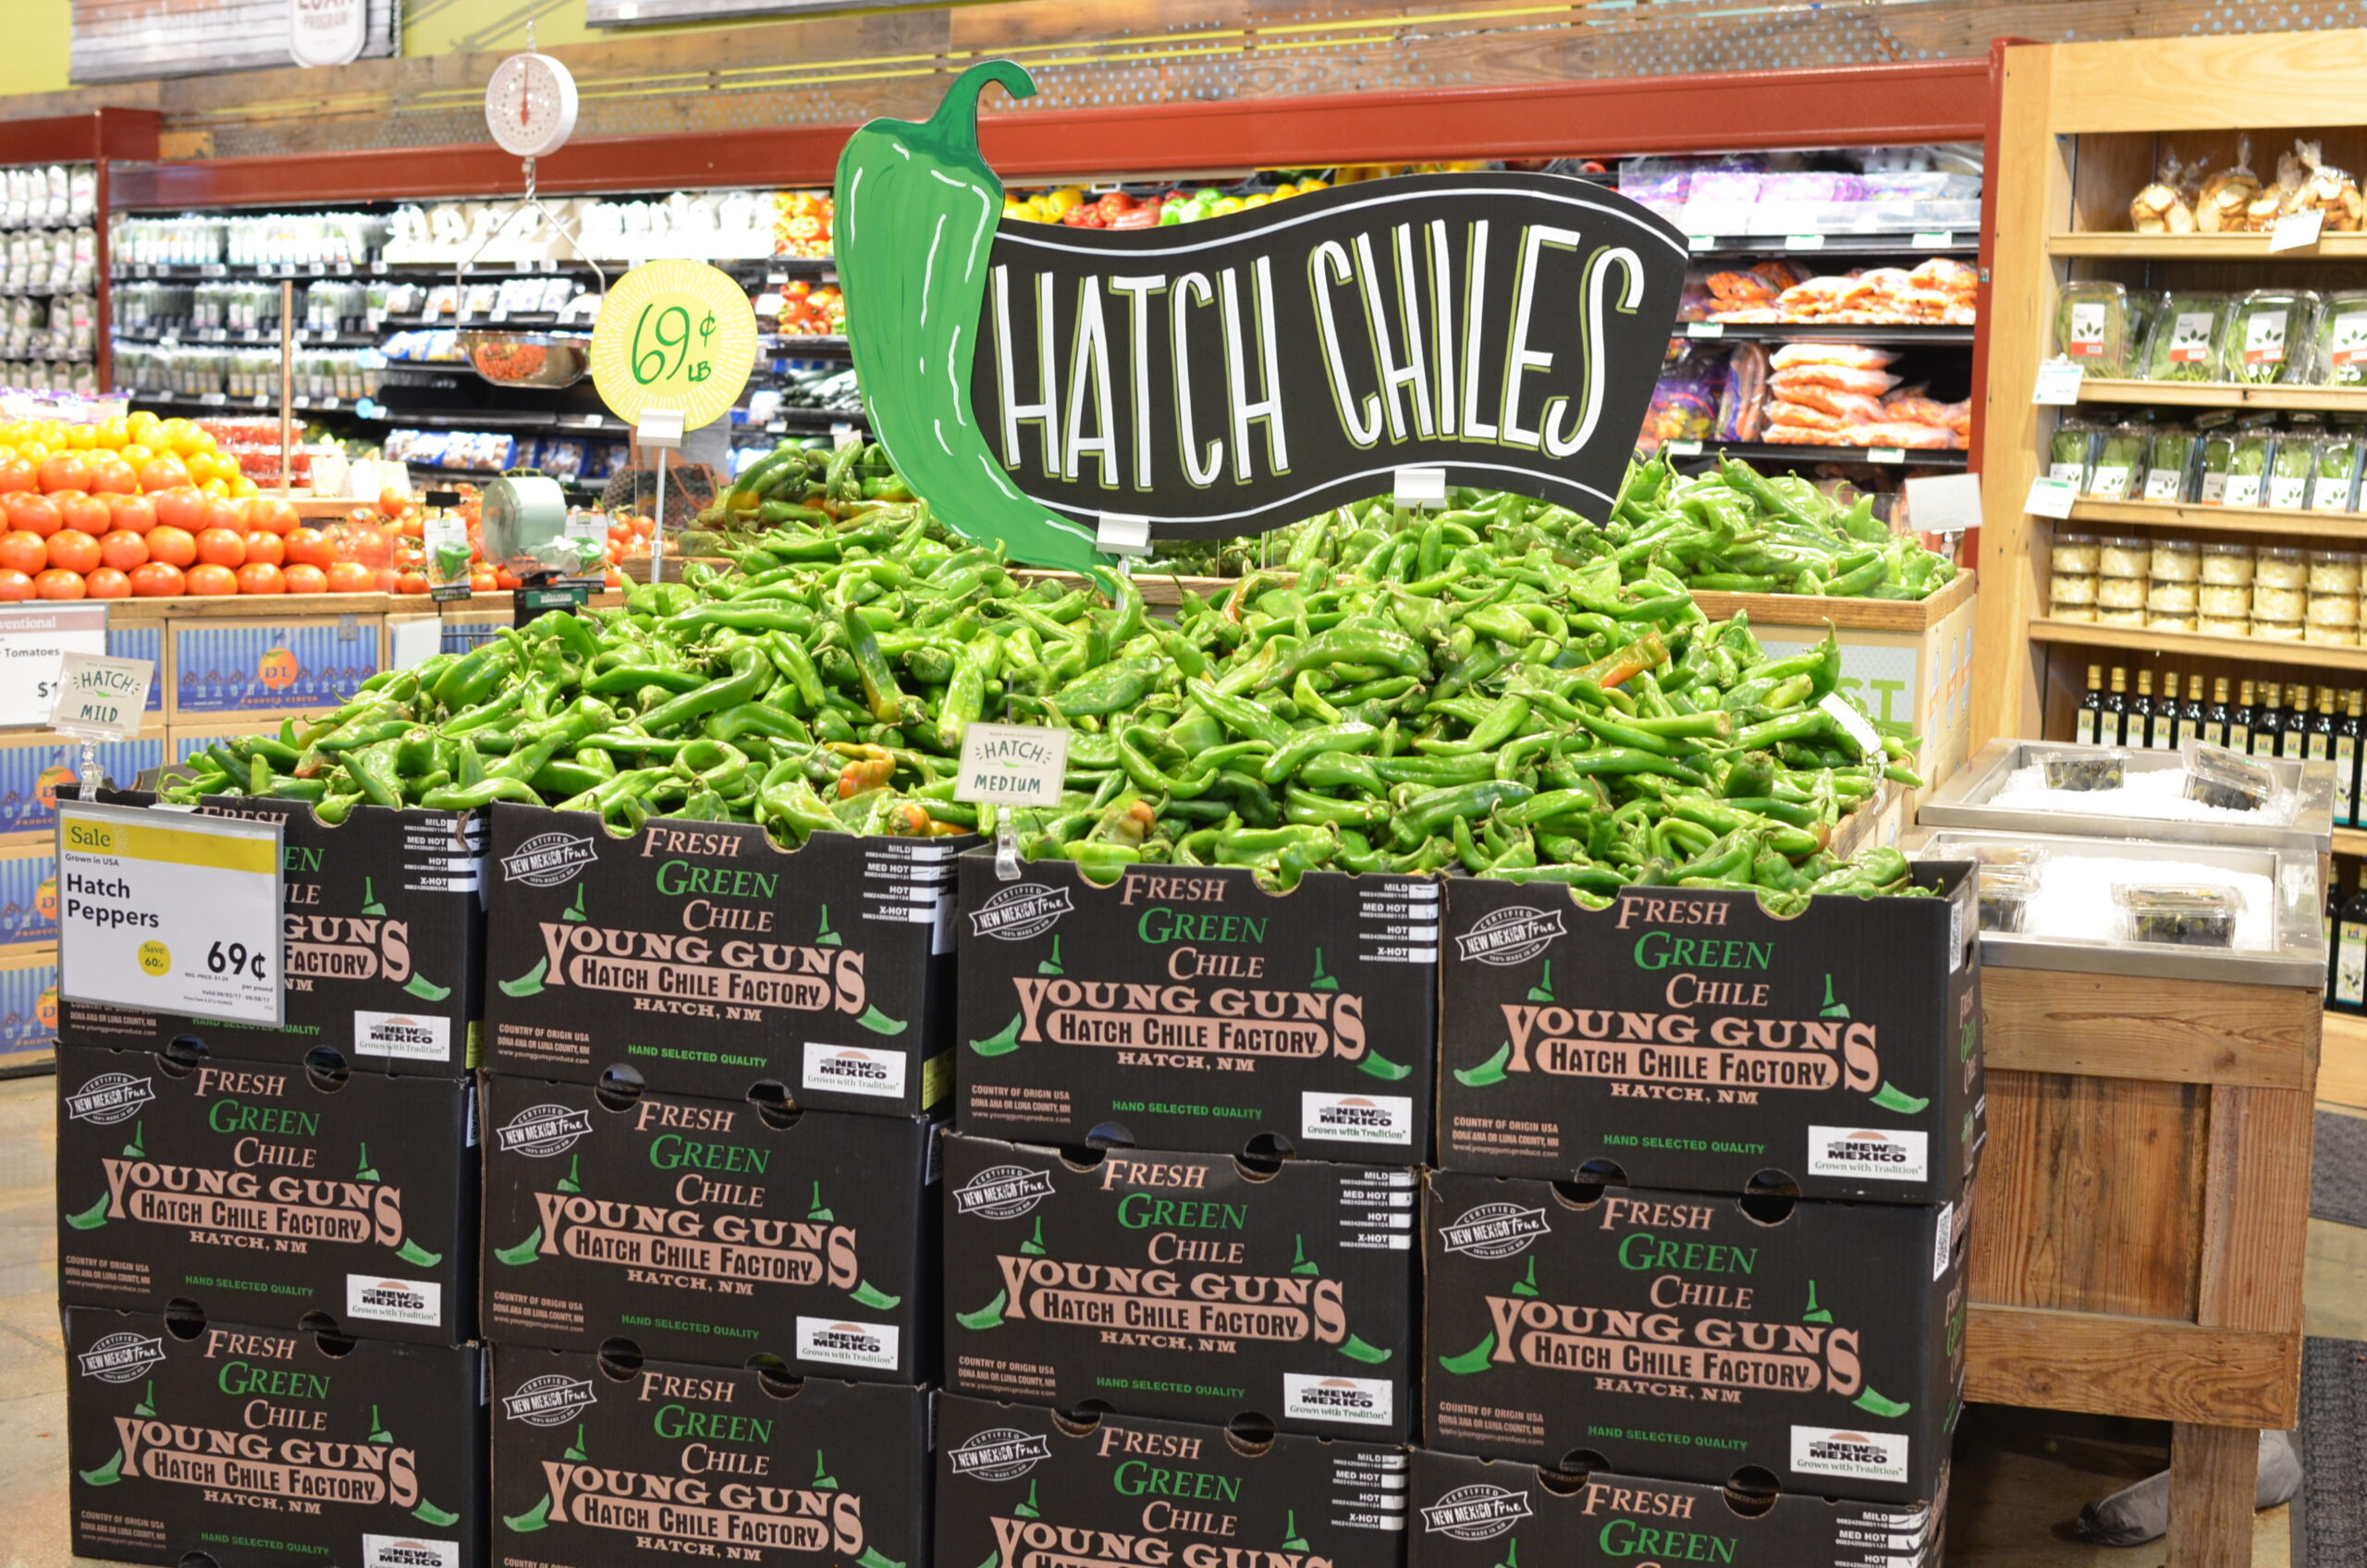 Buy Fresh Hatch Chiles at Whole Foods Market